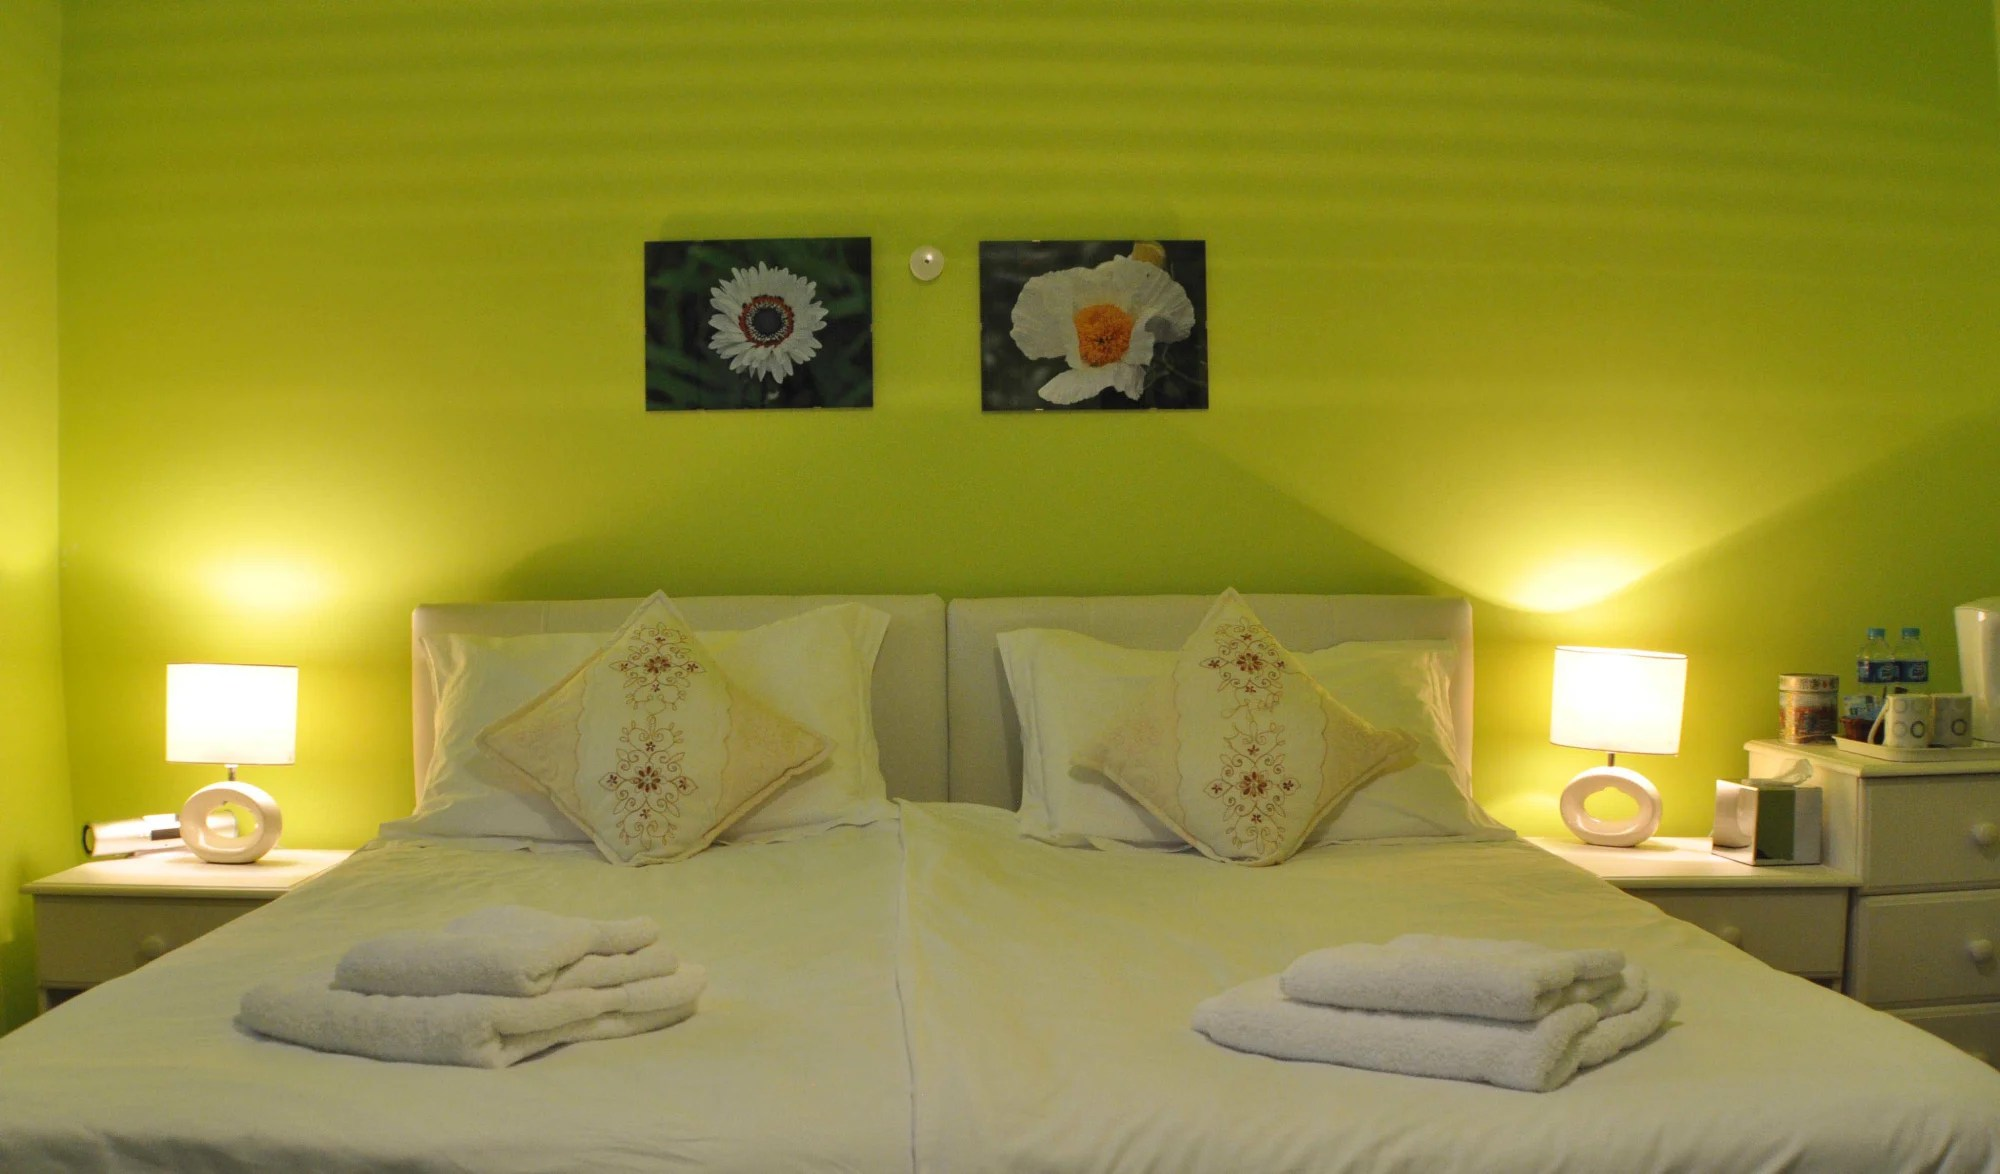 Bed Breakfast Garfield Lodge Paignton Trivago De